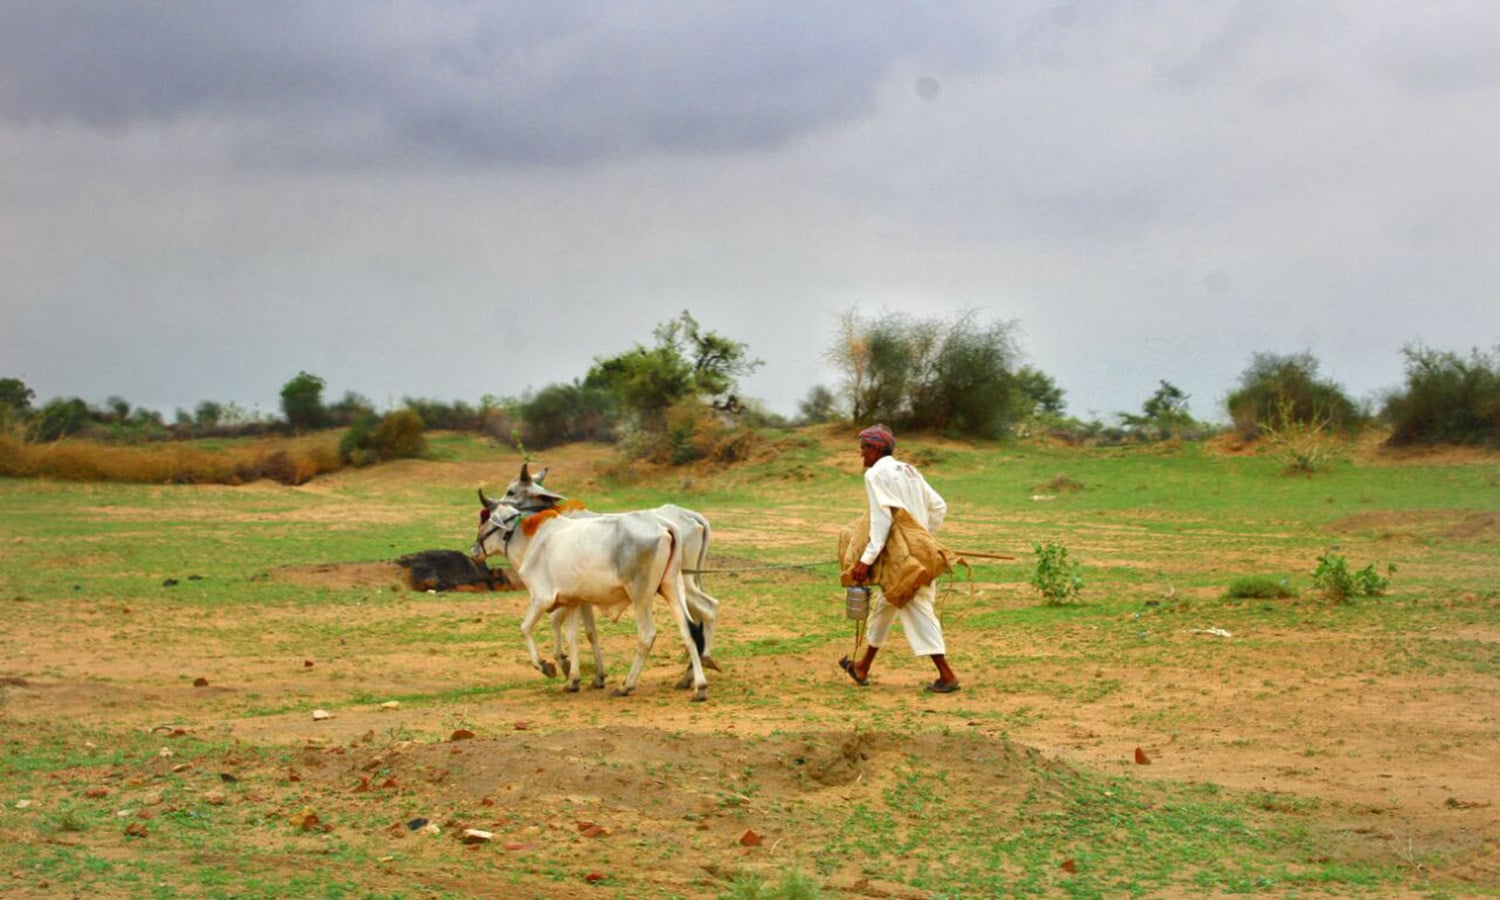 Crops and livestock are the mainstays of the economy of Tharis.